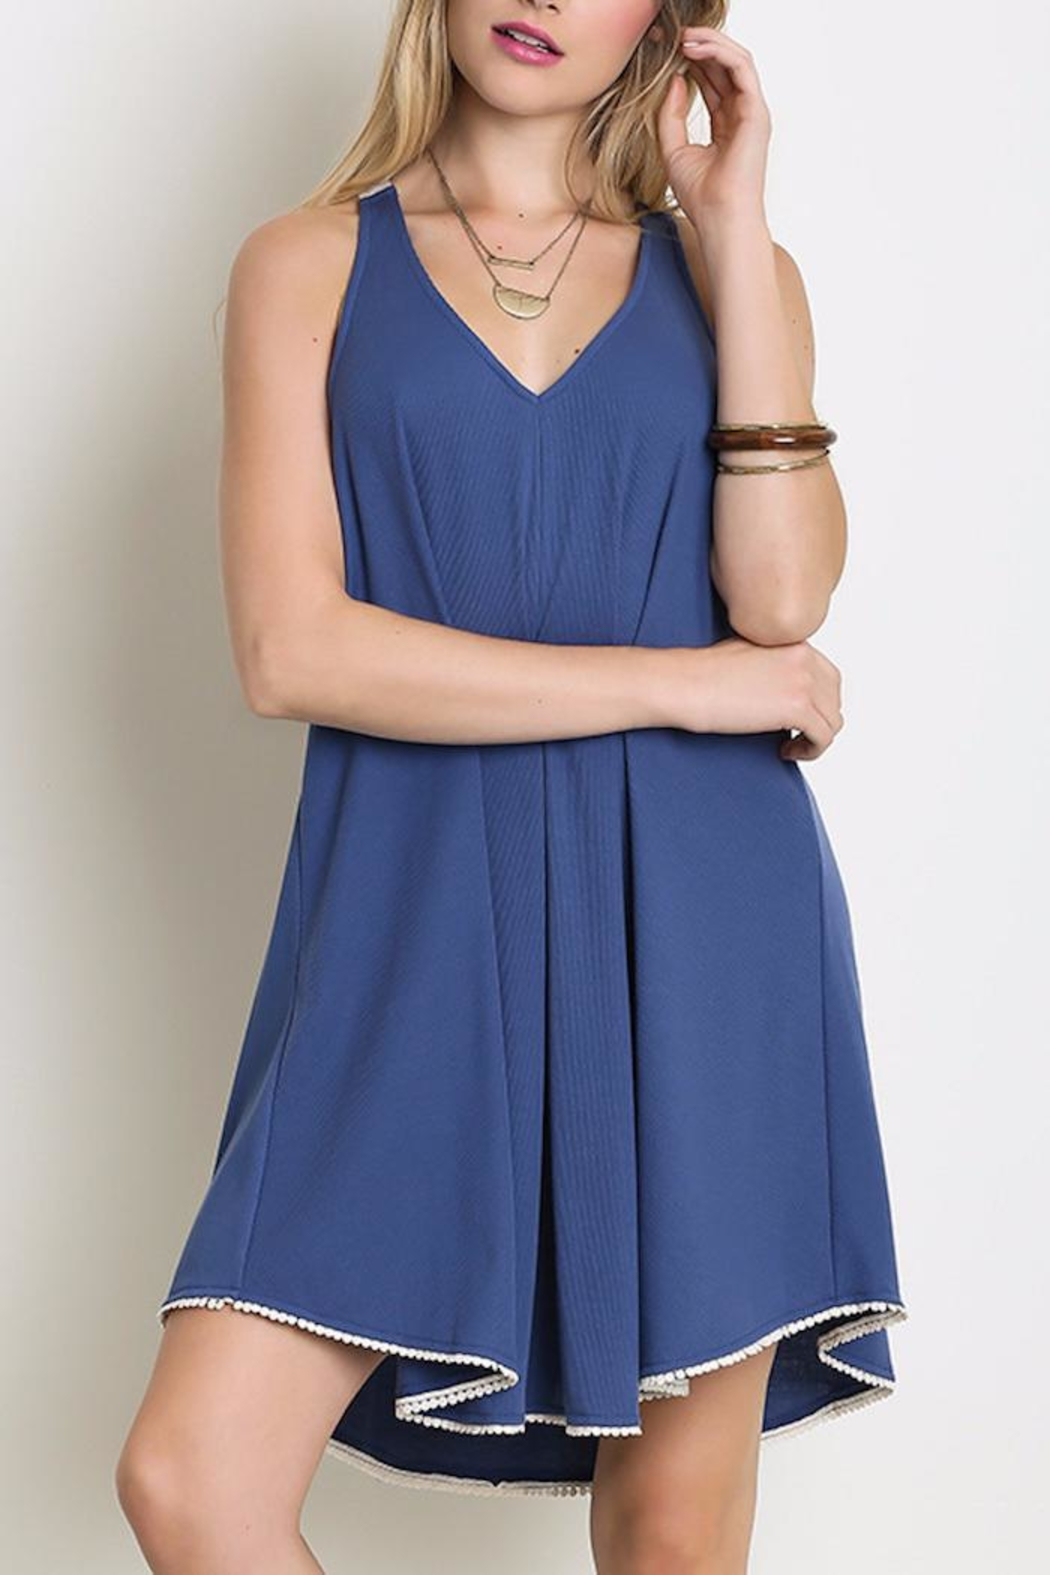 People Outfitter My Boardwalk Dress - Main Image